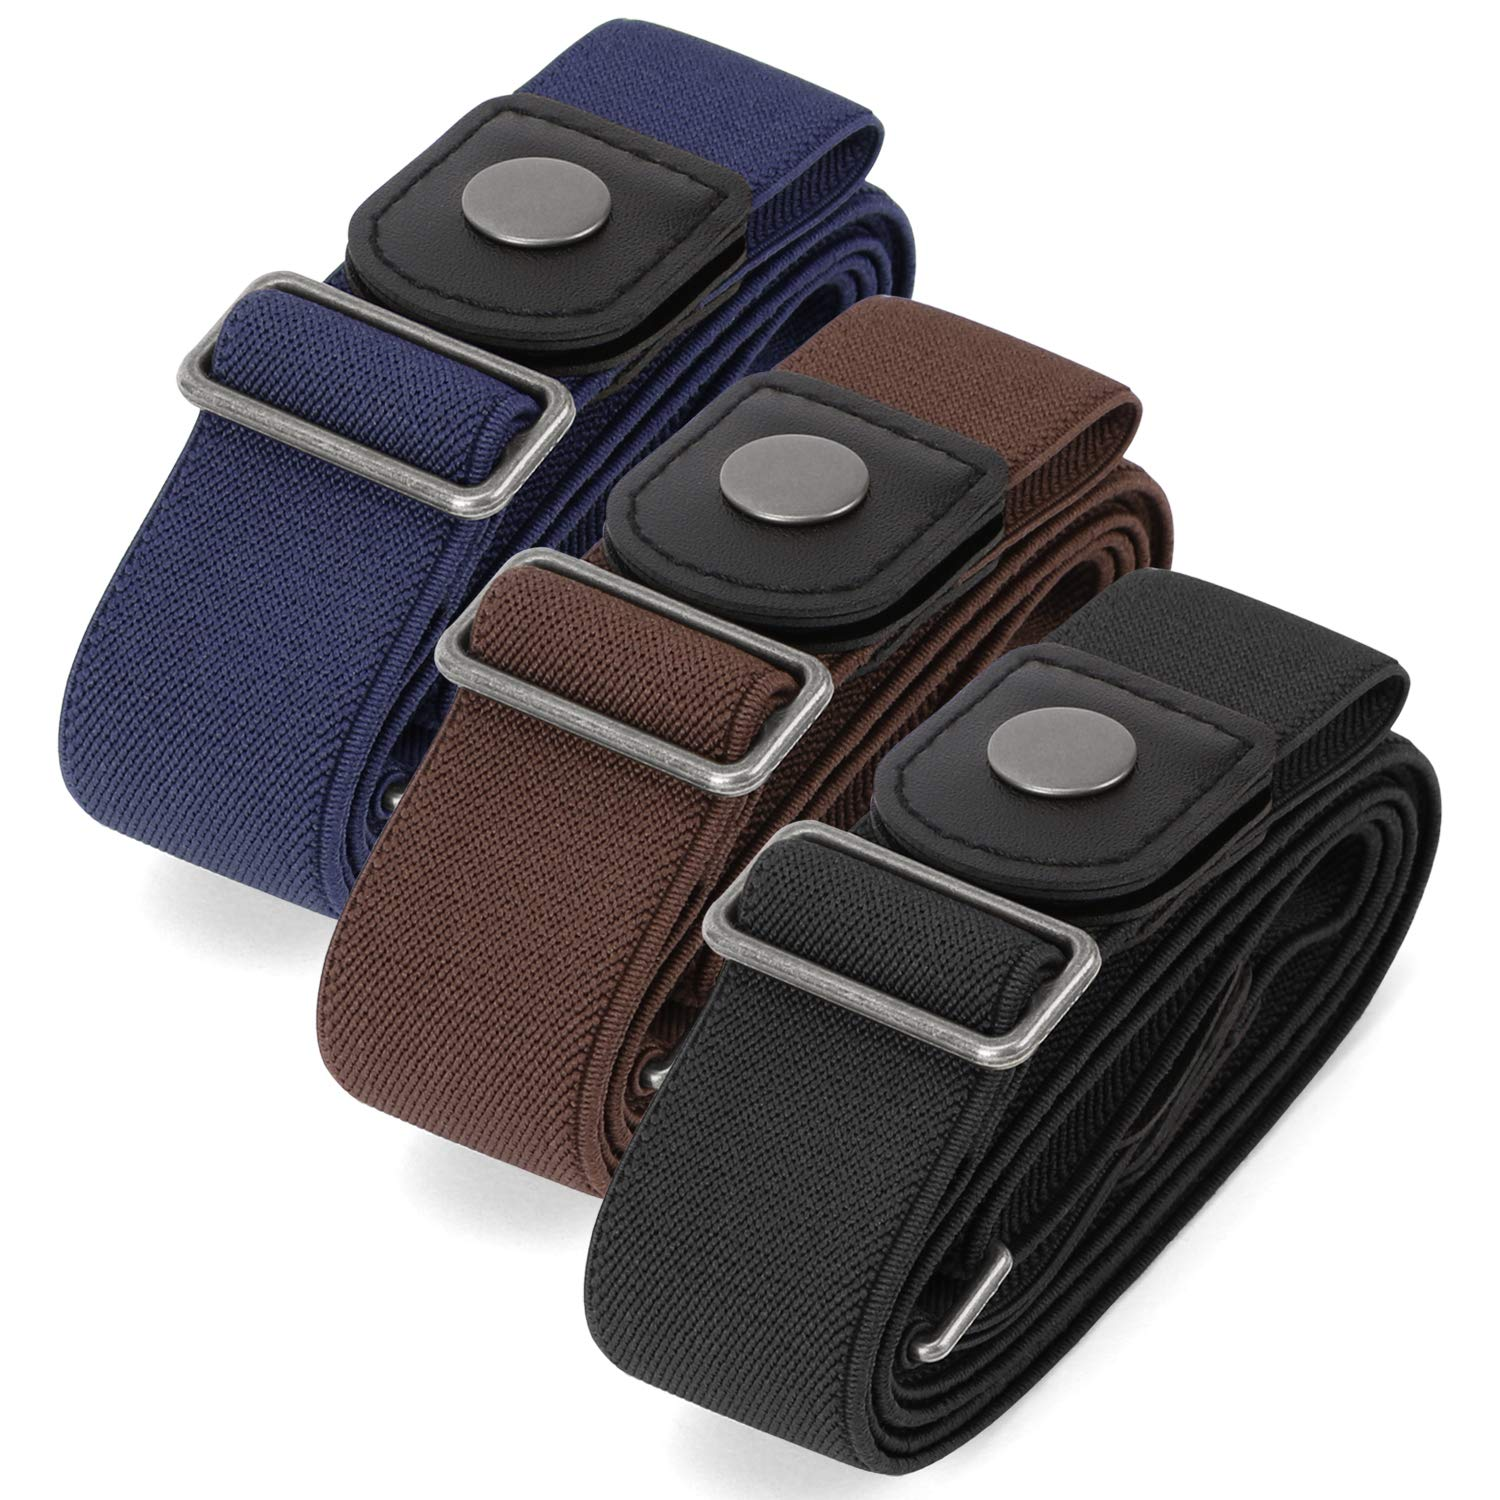 No Buckle Invisible Stretch Belt Buckle-FreeElasticBelt for Women